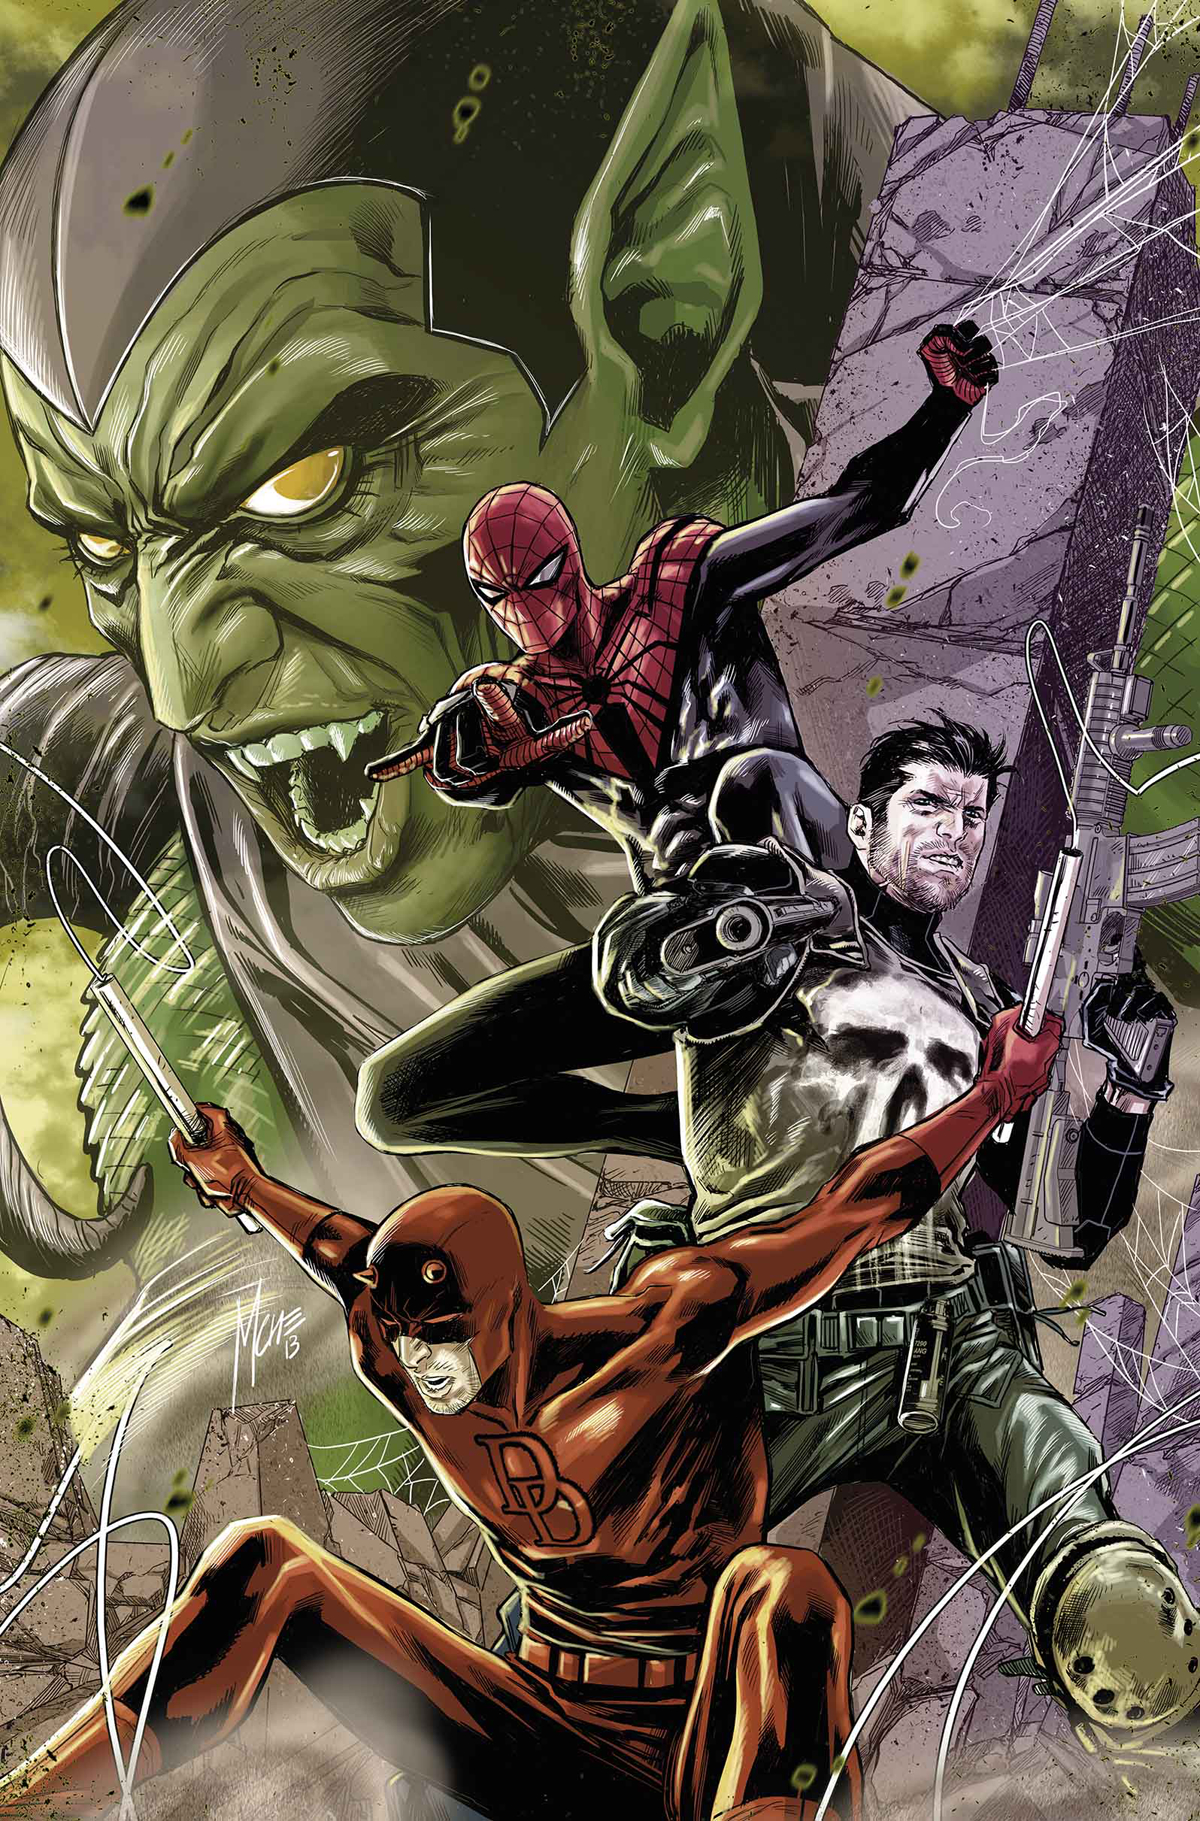 SUPERIOR SPIDER-MAN TEAM UP #9